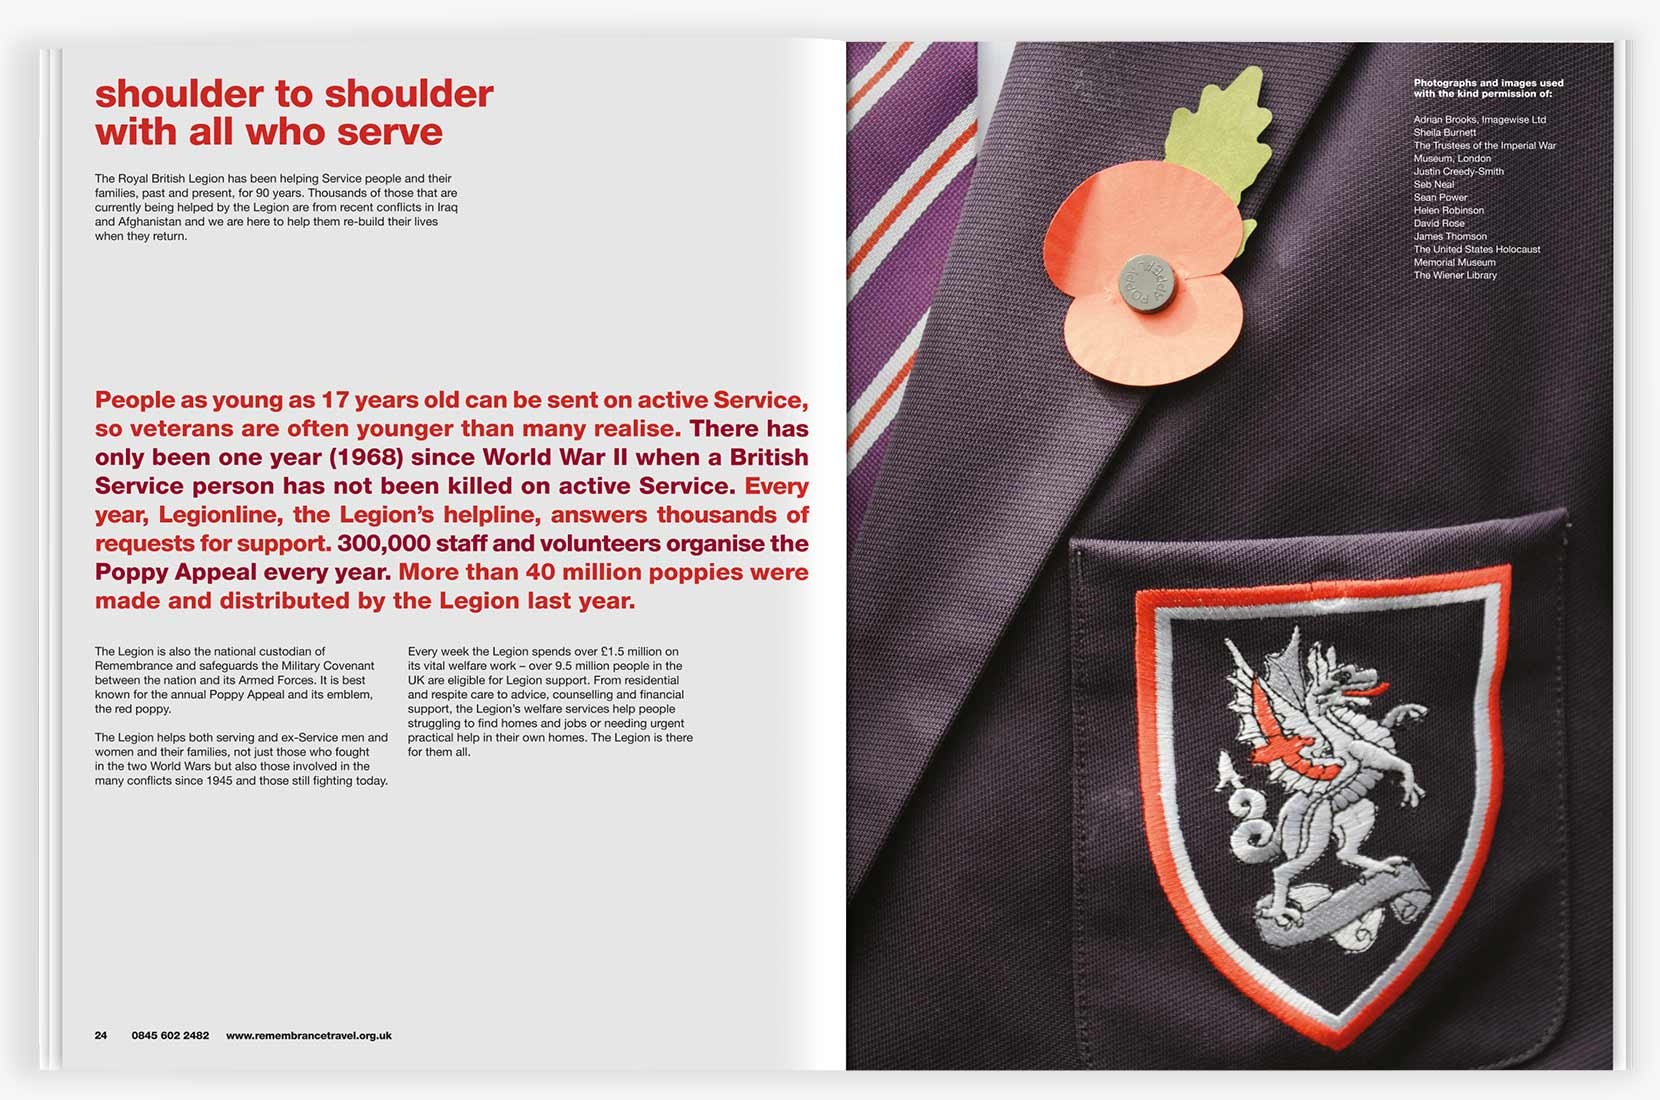 Royal British Legion – Poppy learning resource spread